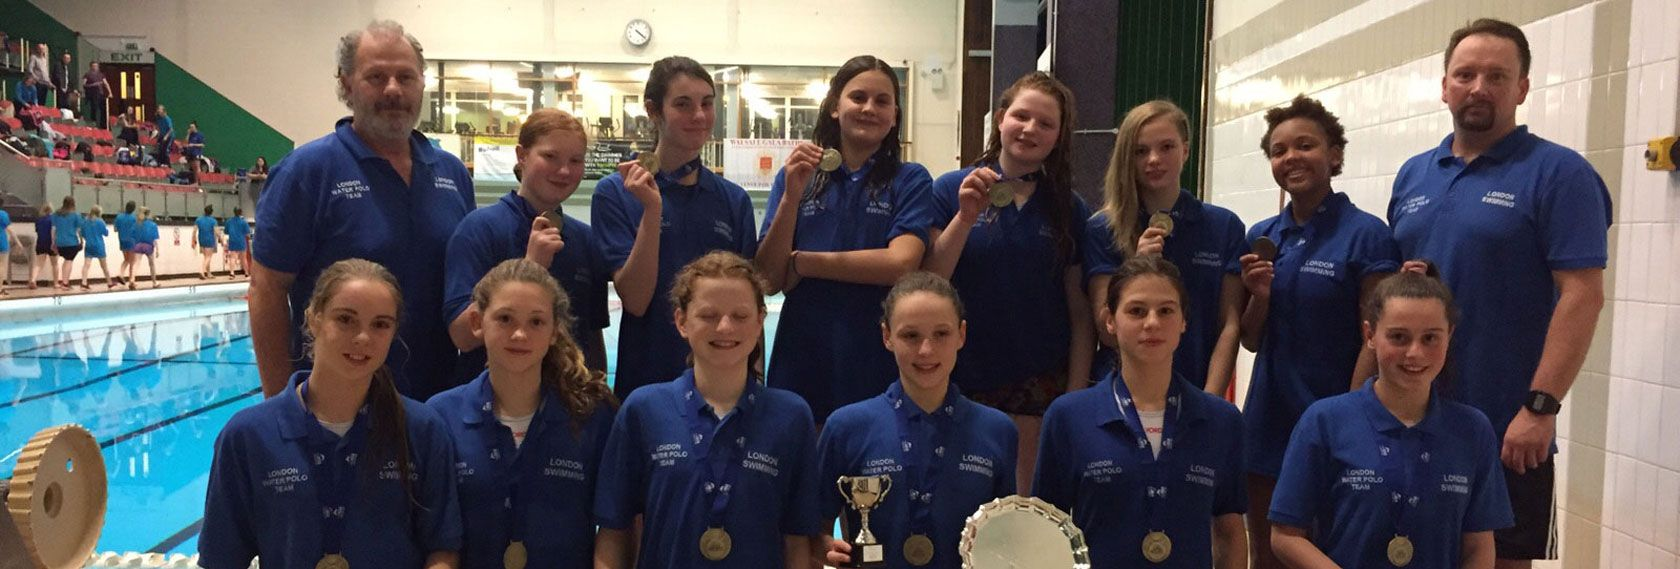 london_girls_asa_inter_regional_u14_2015.jpg